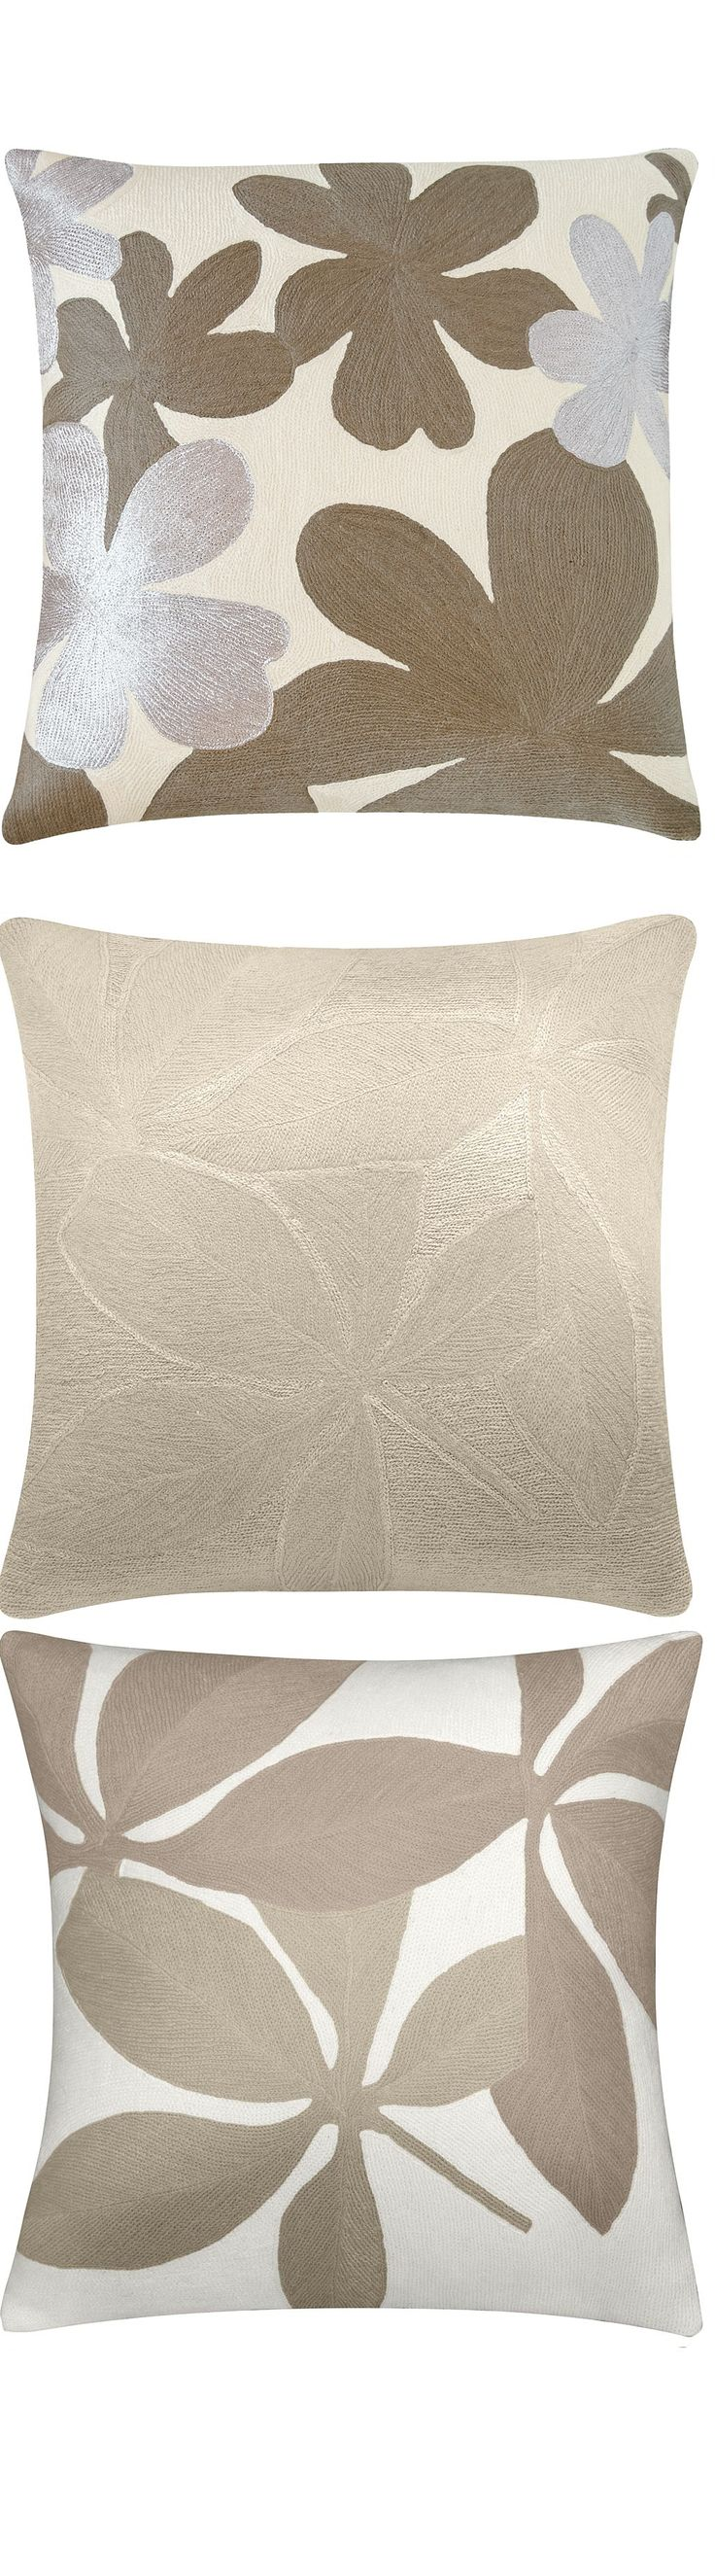 the  best grey pillow cases ideas on pinterest  bed linens  - gray pillows gray throw pillows gray modern pillows by instyle